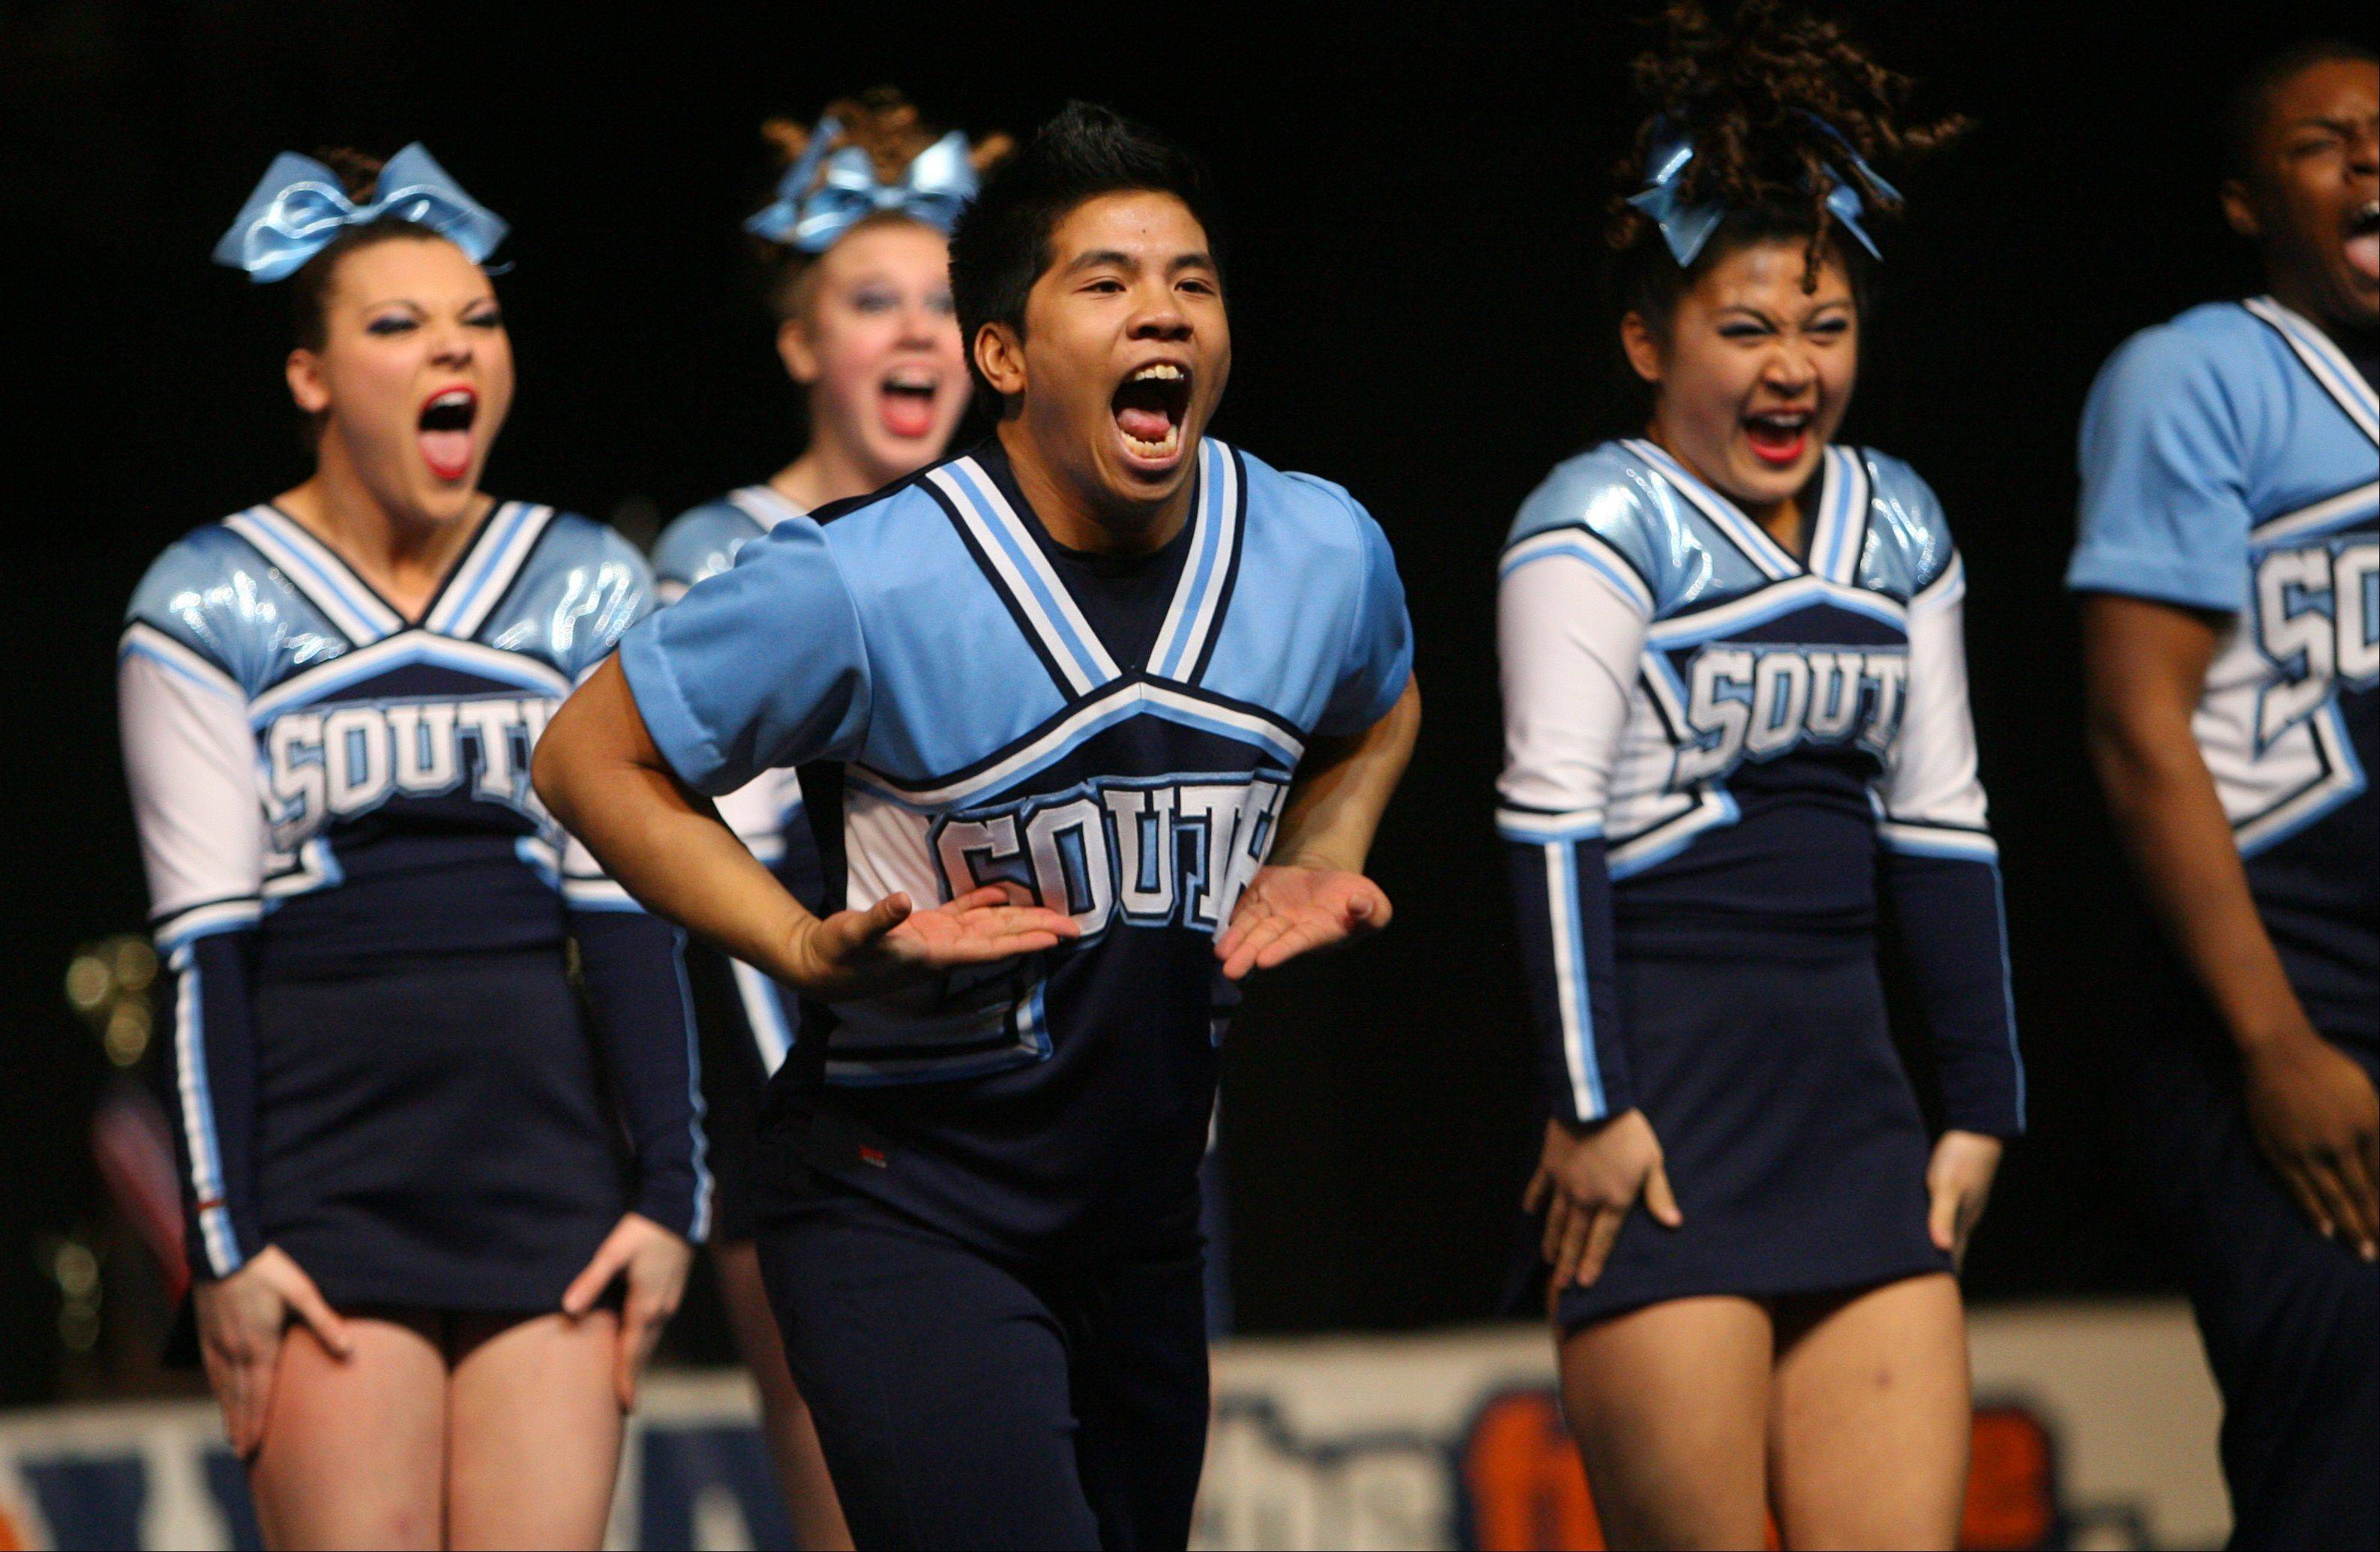 Downers Grove South High School participates in the IHSA Competitive Cheerleading finals on Saturday, Feb. 2 at the U.S. Cellular Coliseum in Bloomington.